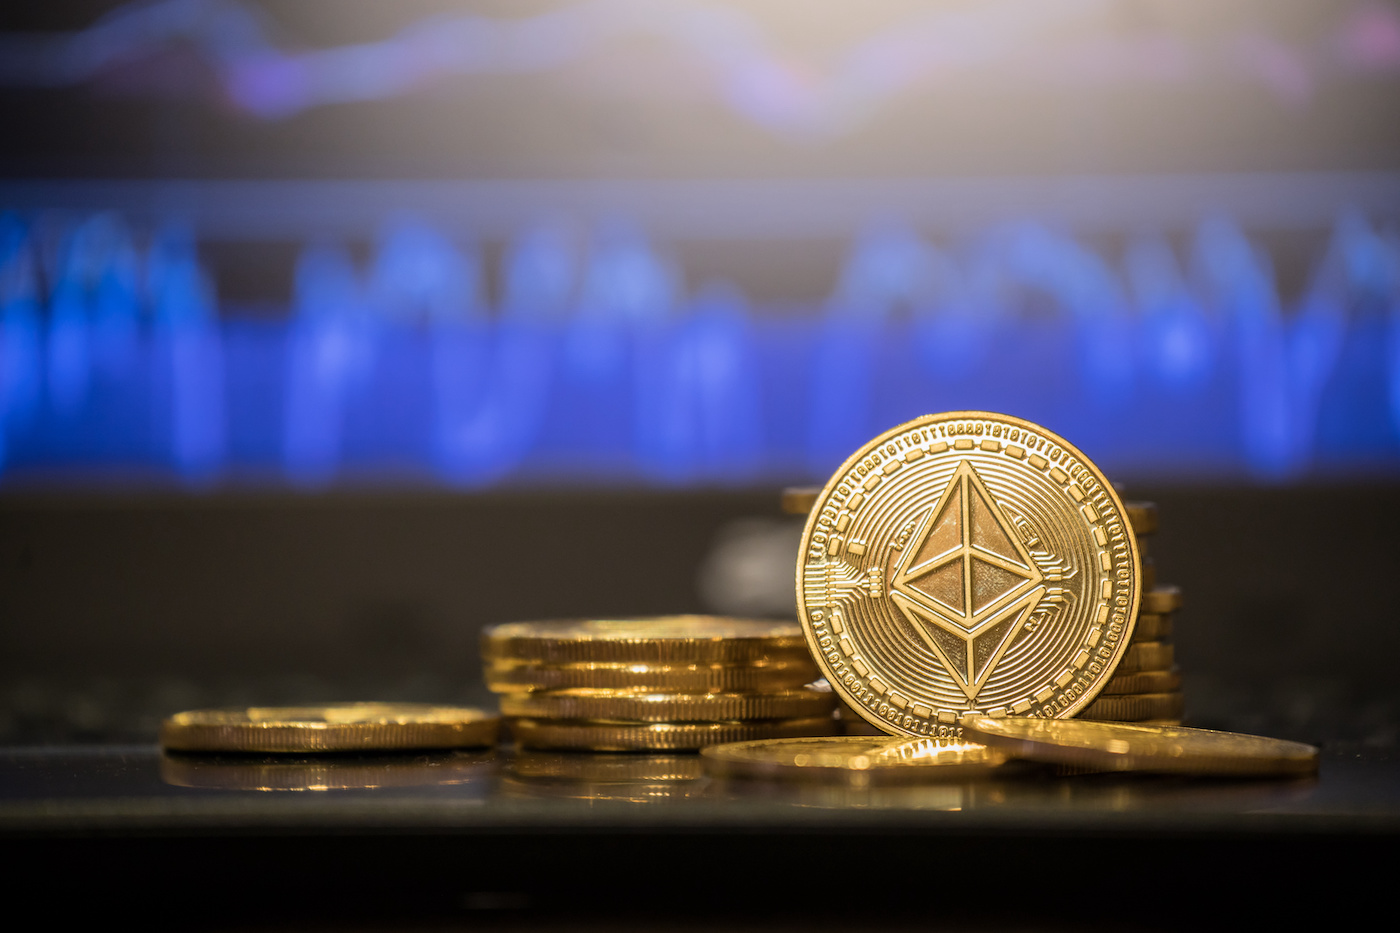 Picture of an ETH coin standing with other Ethereum coins laying around it